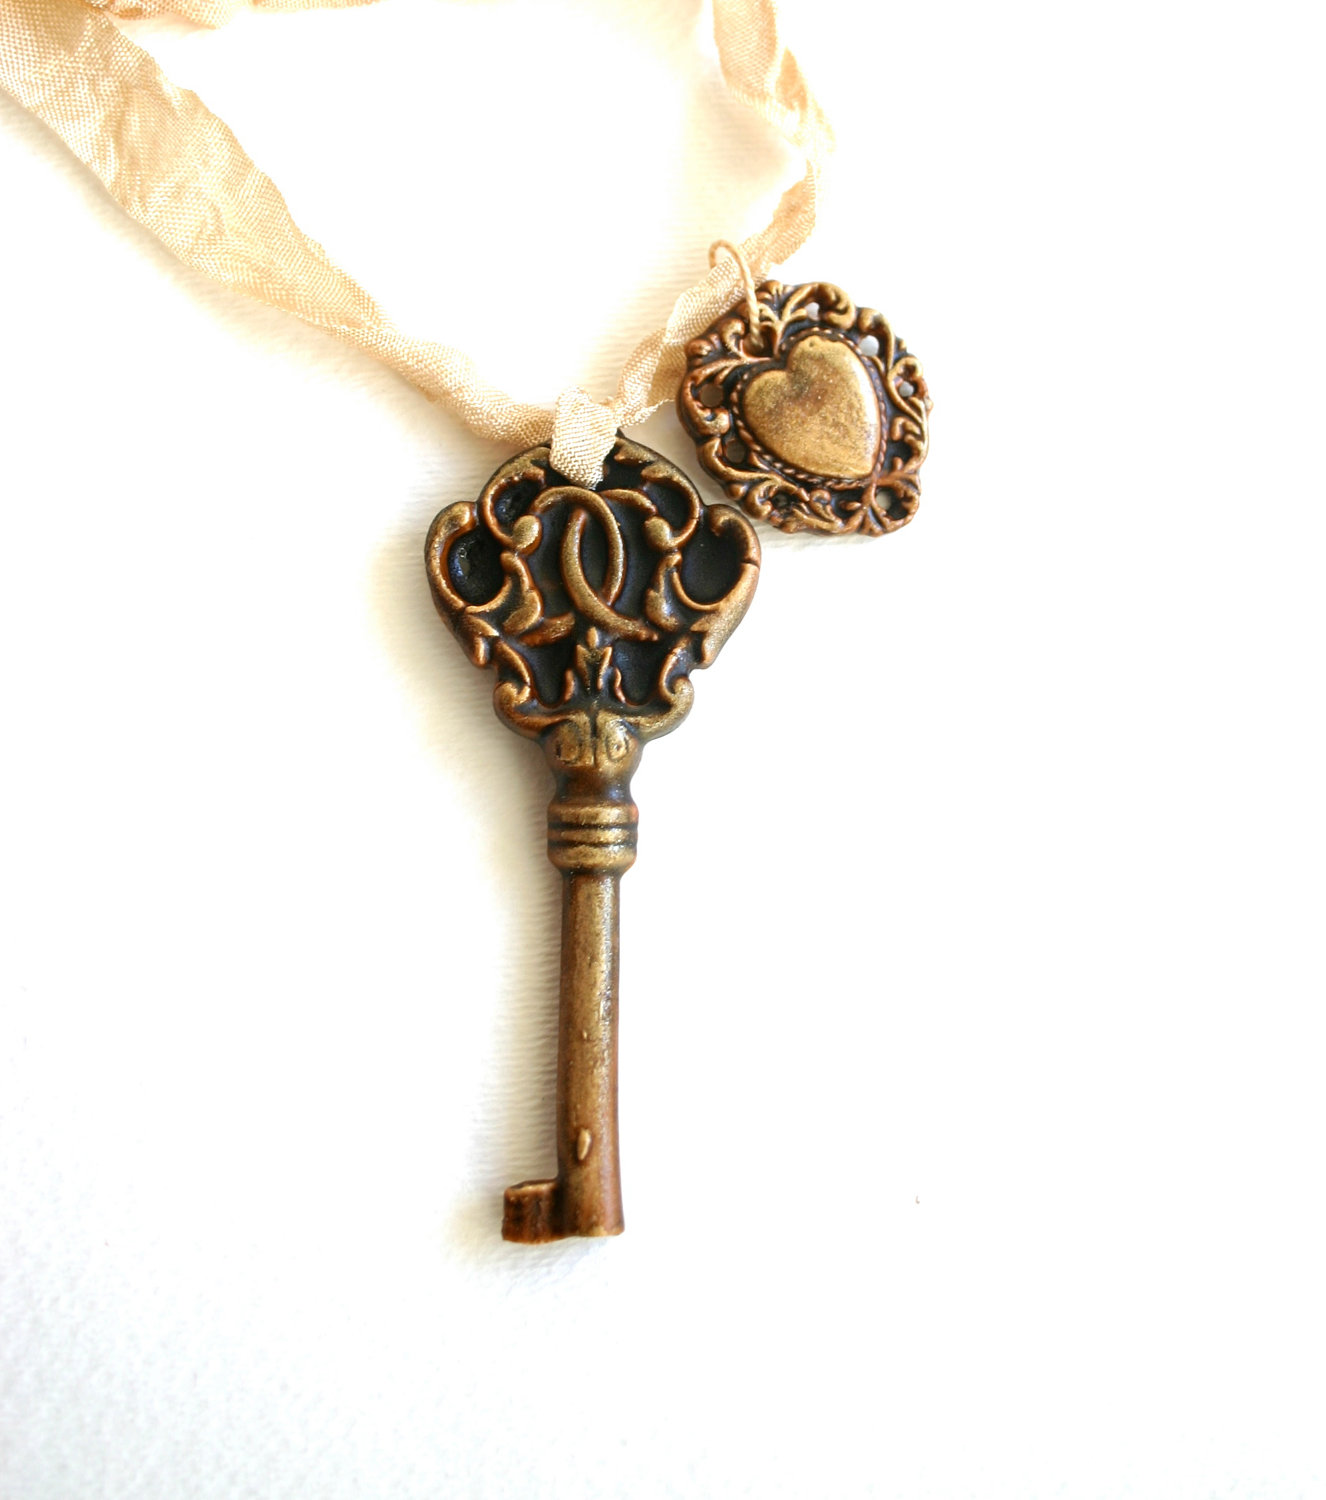 Chocolate-candy-necklace-wedding-guest-favors-skeleton-key.original